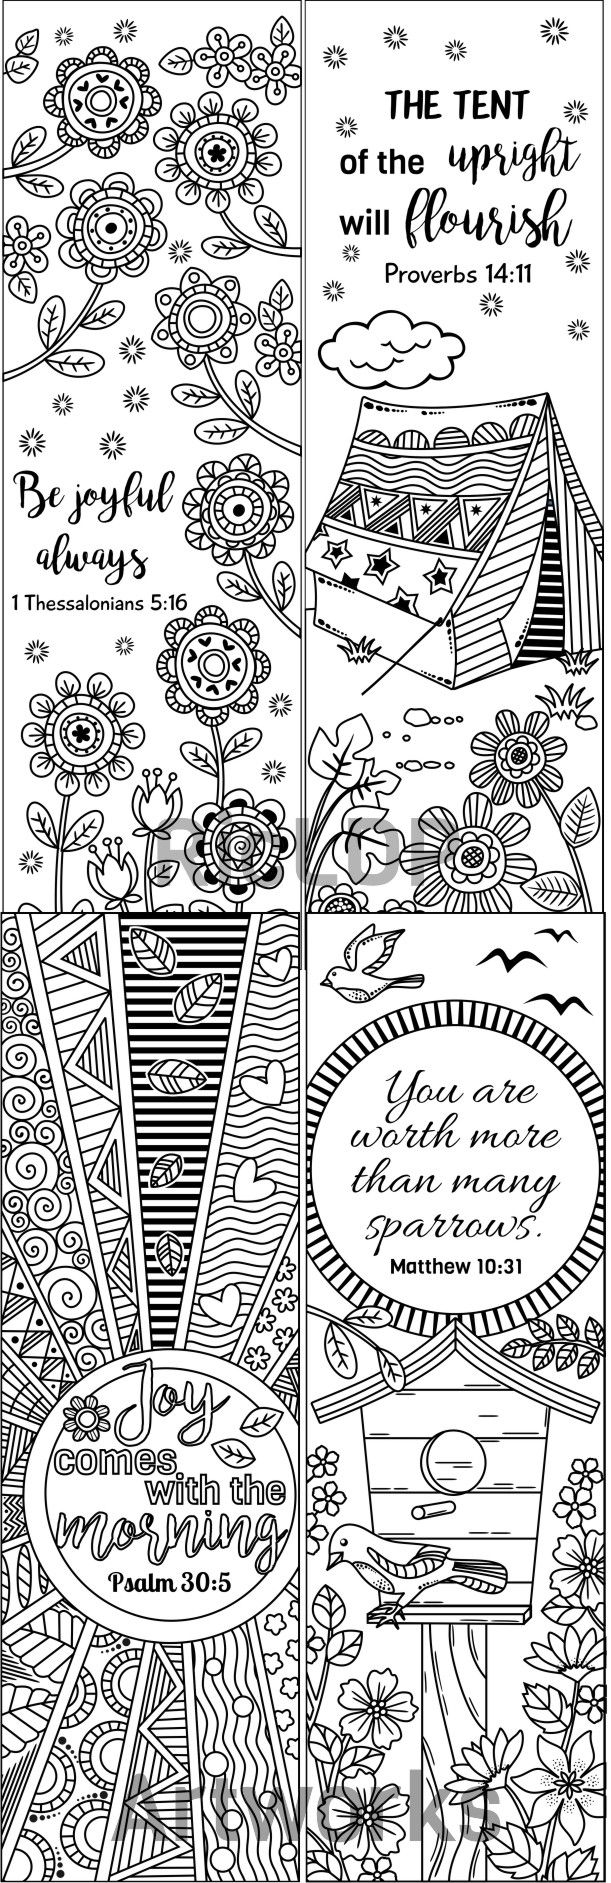 Religious bookmarks to color - 8 Printable Bible Verse Coloring Bookmarks Coloring Doodle Bookmarks With Inspiring Bible Verses